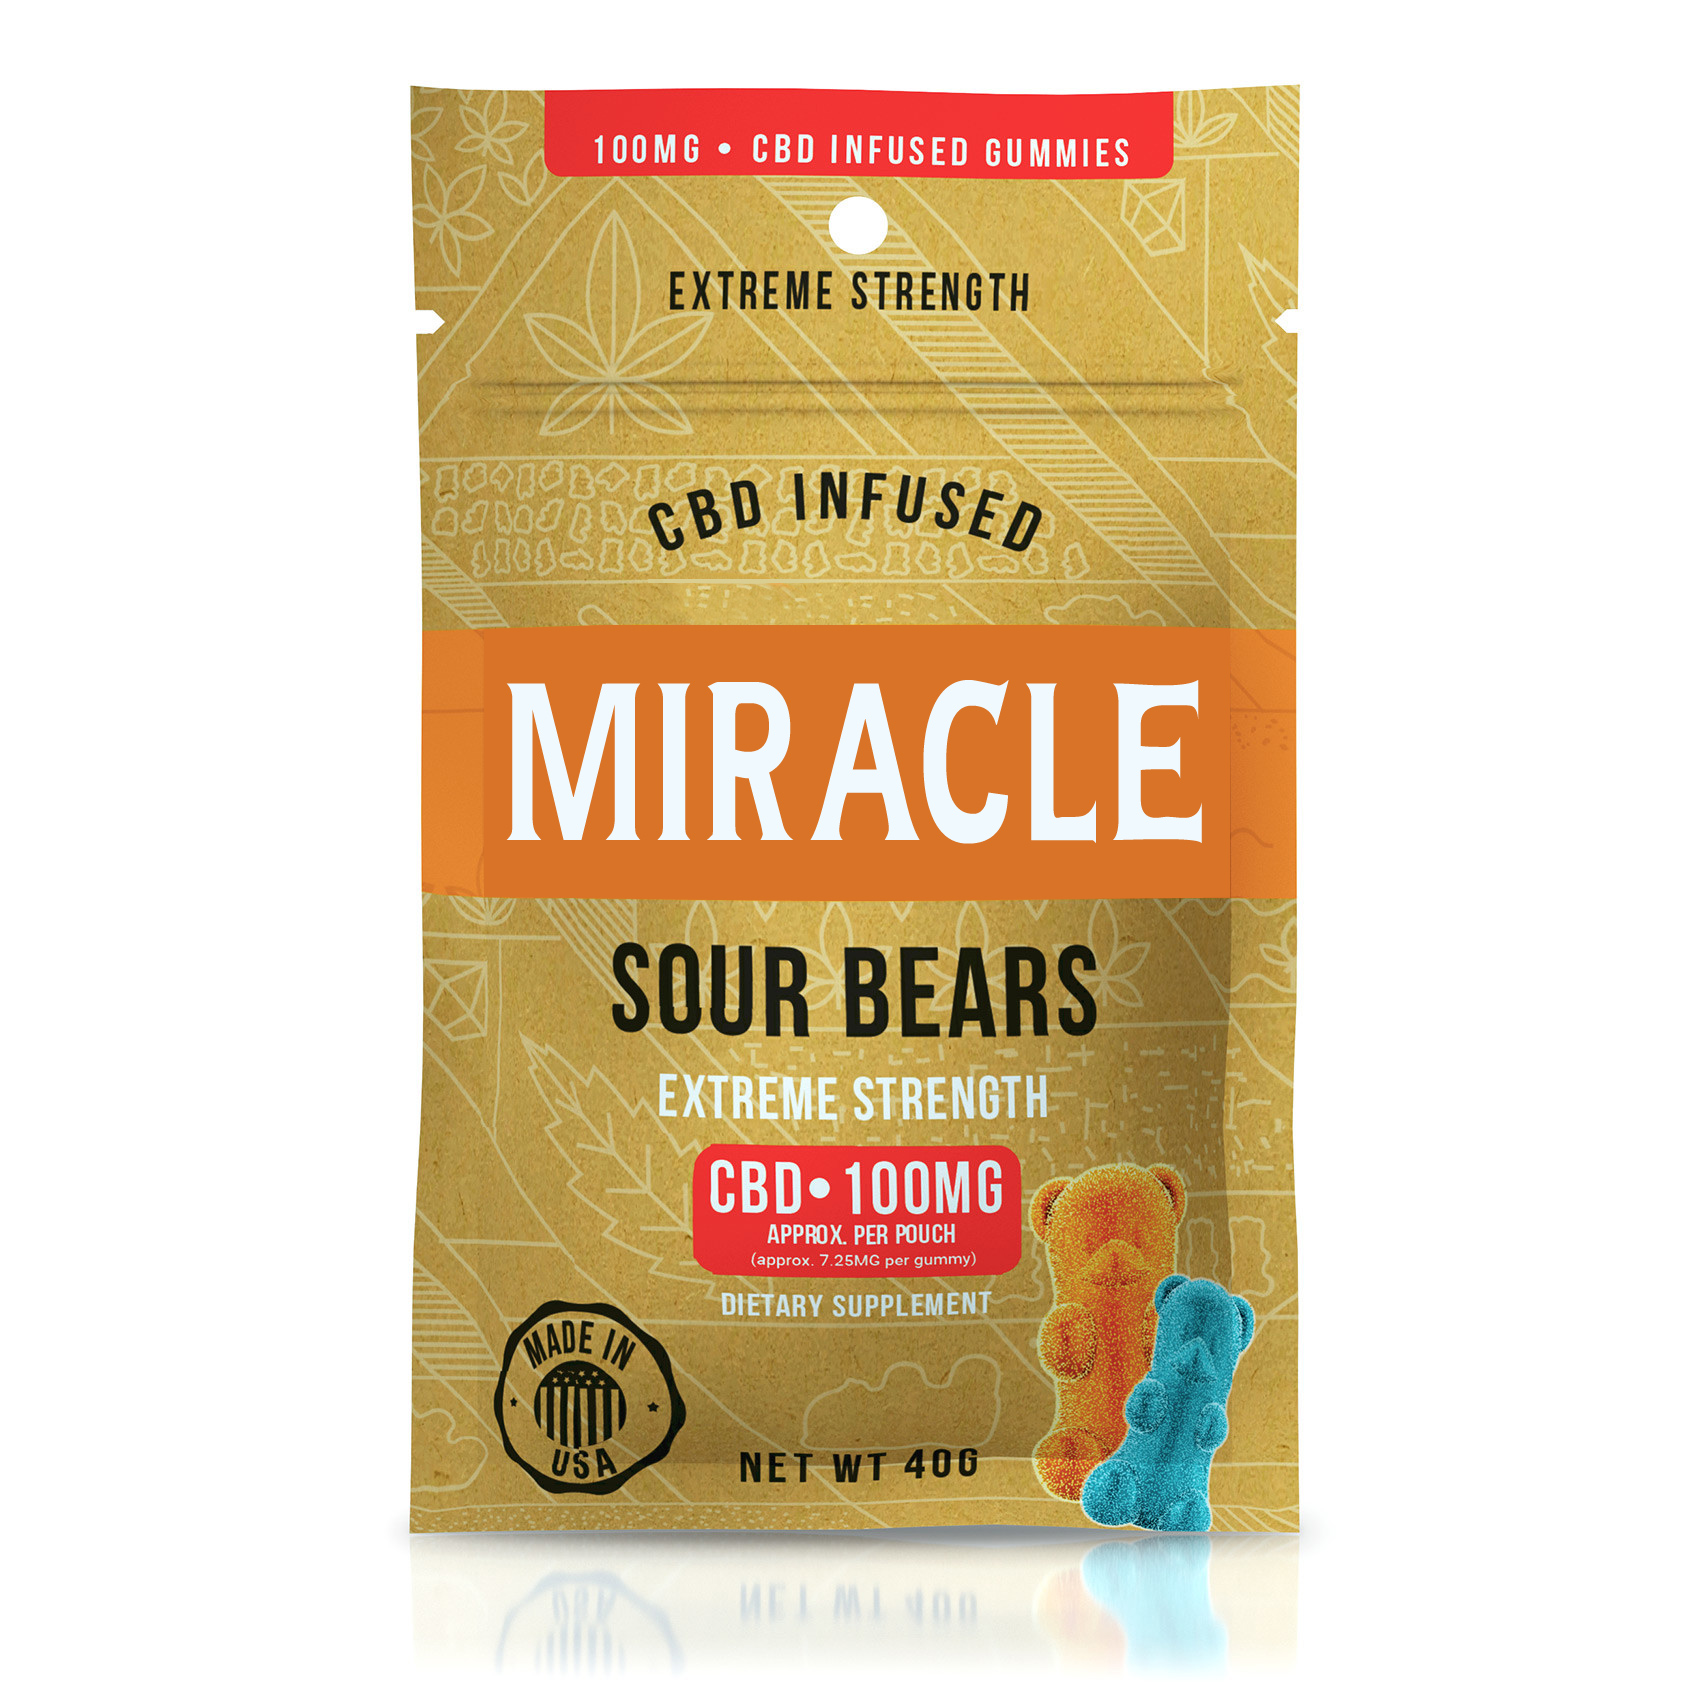 Miracle Gummies - CBD Infused Sour Bears